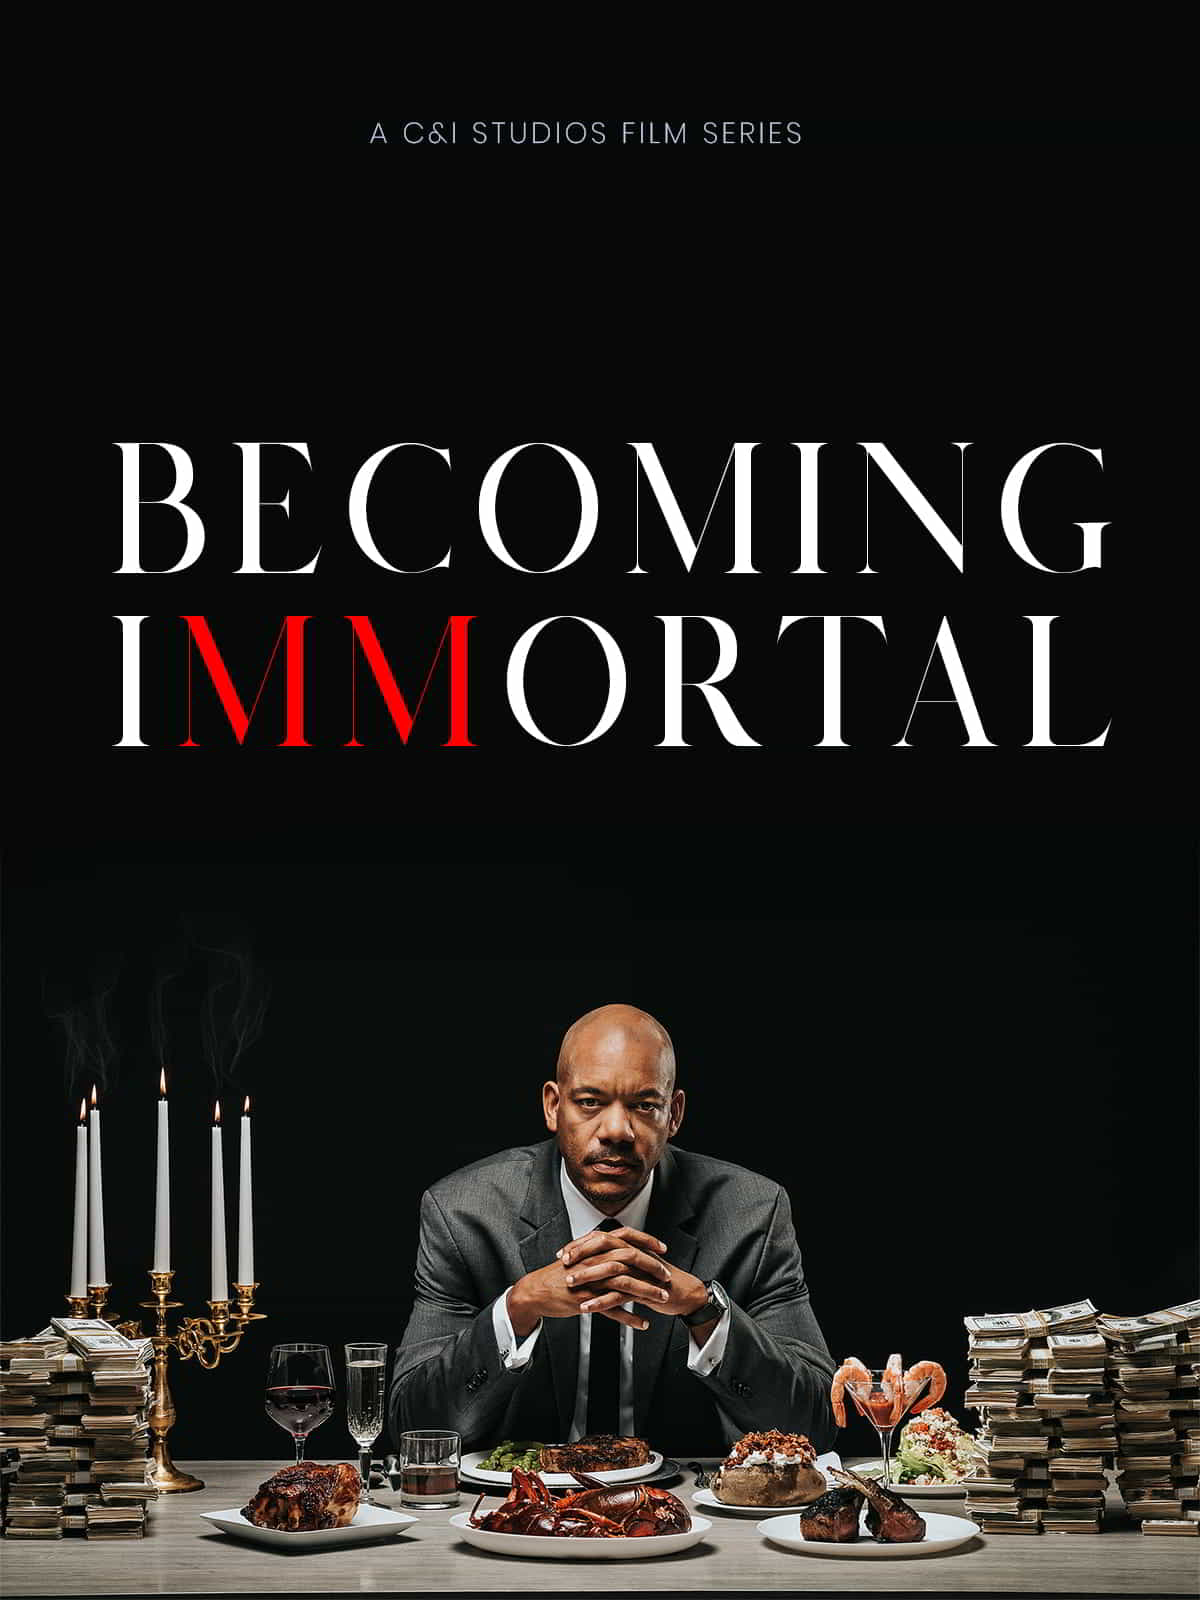 Becoming Immortal An Original C&I Films Television Series